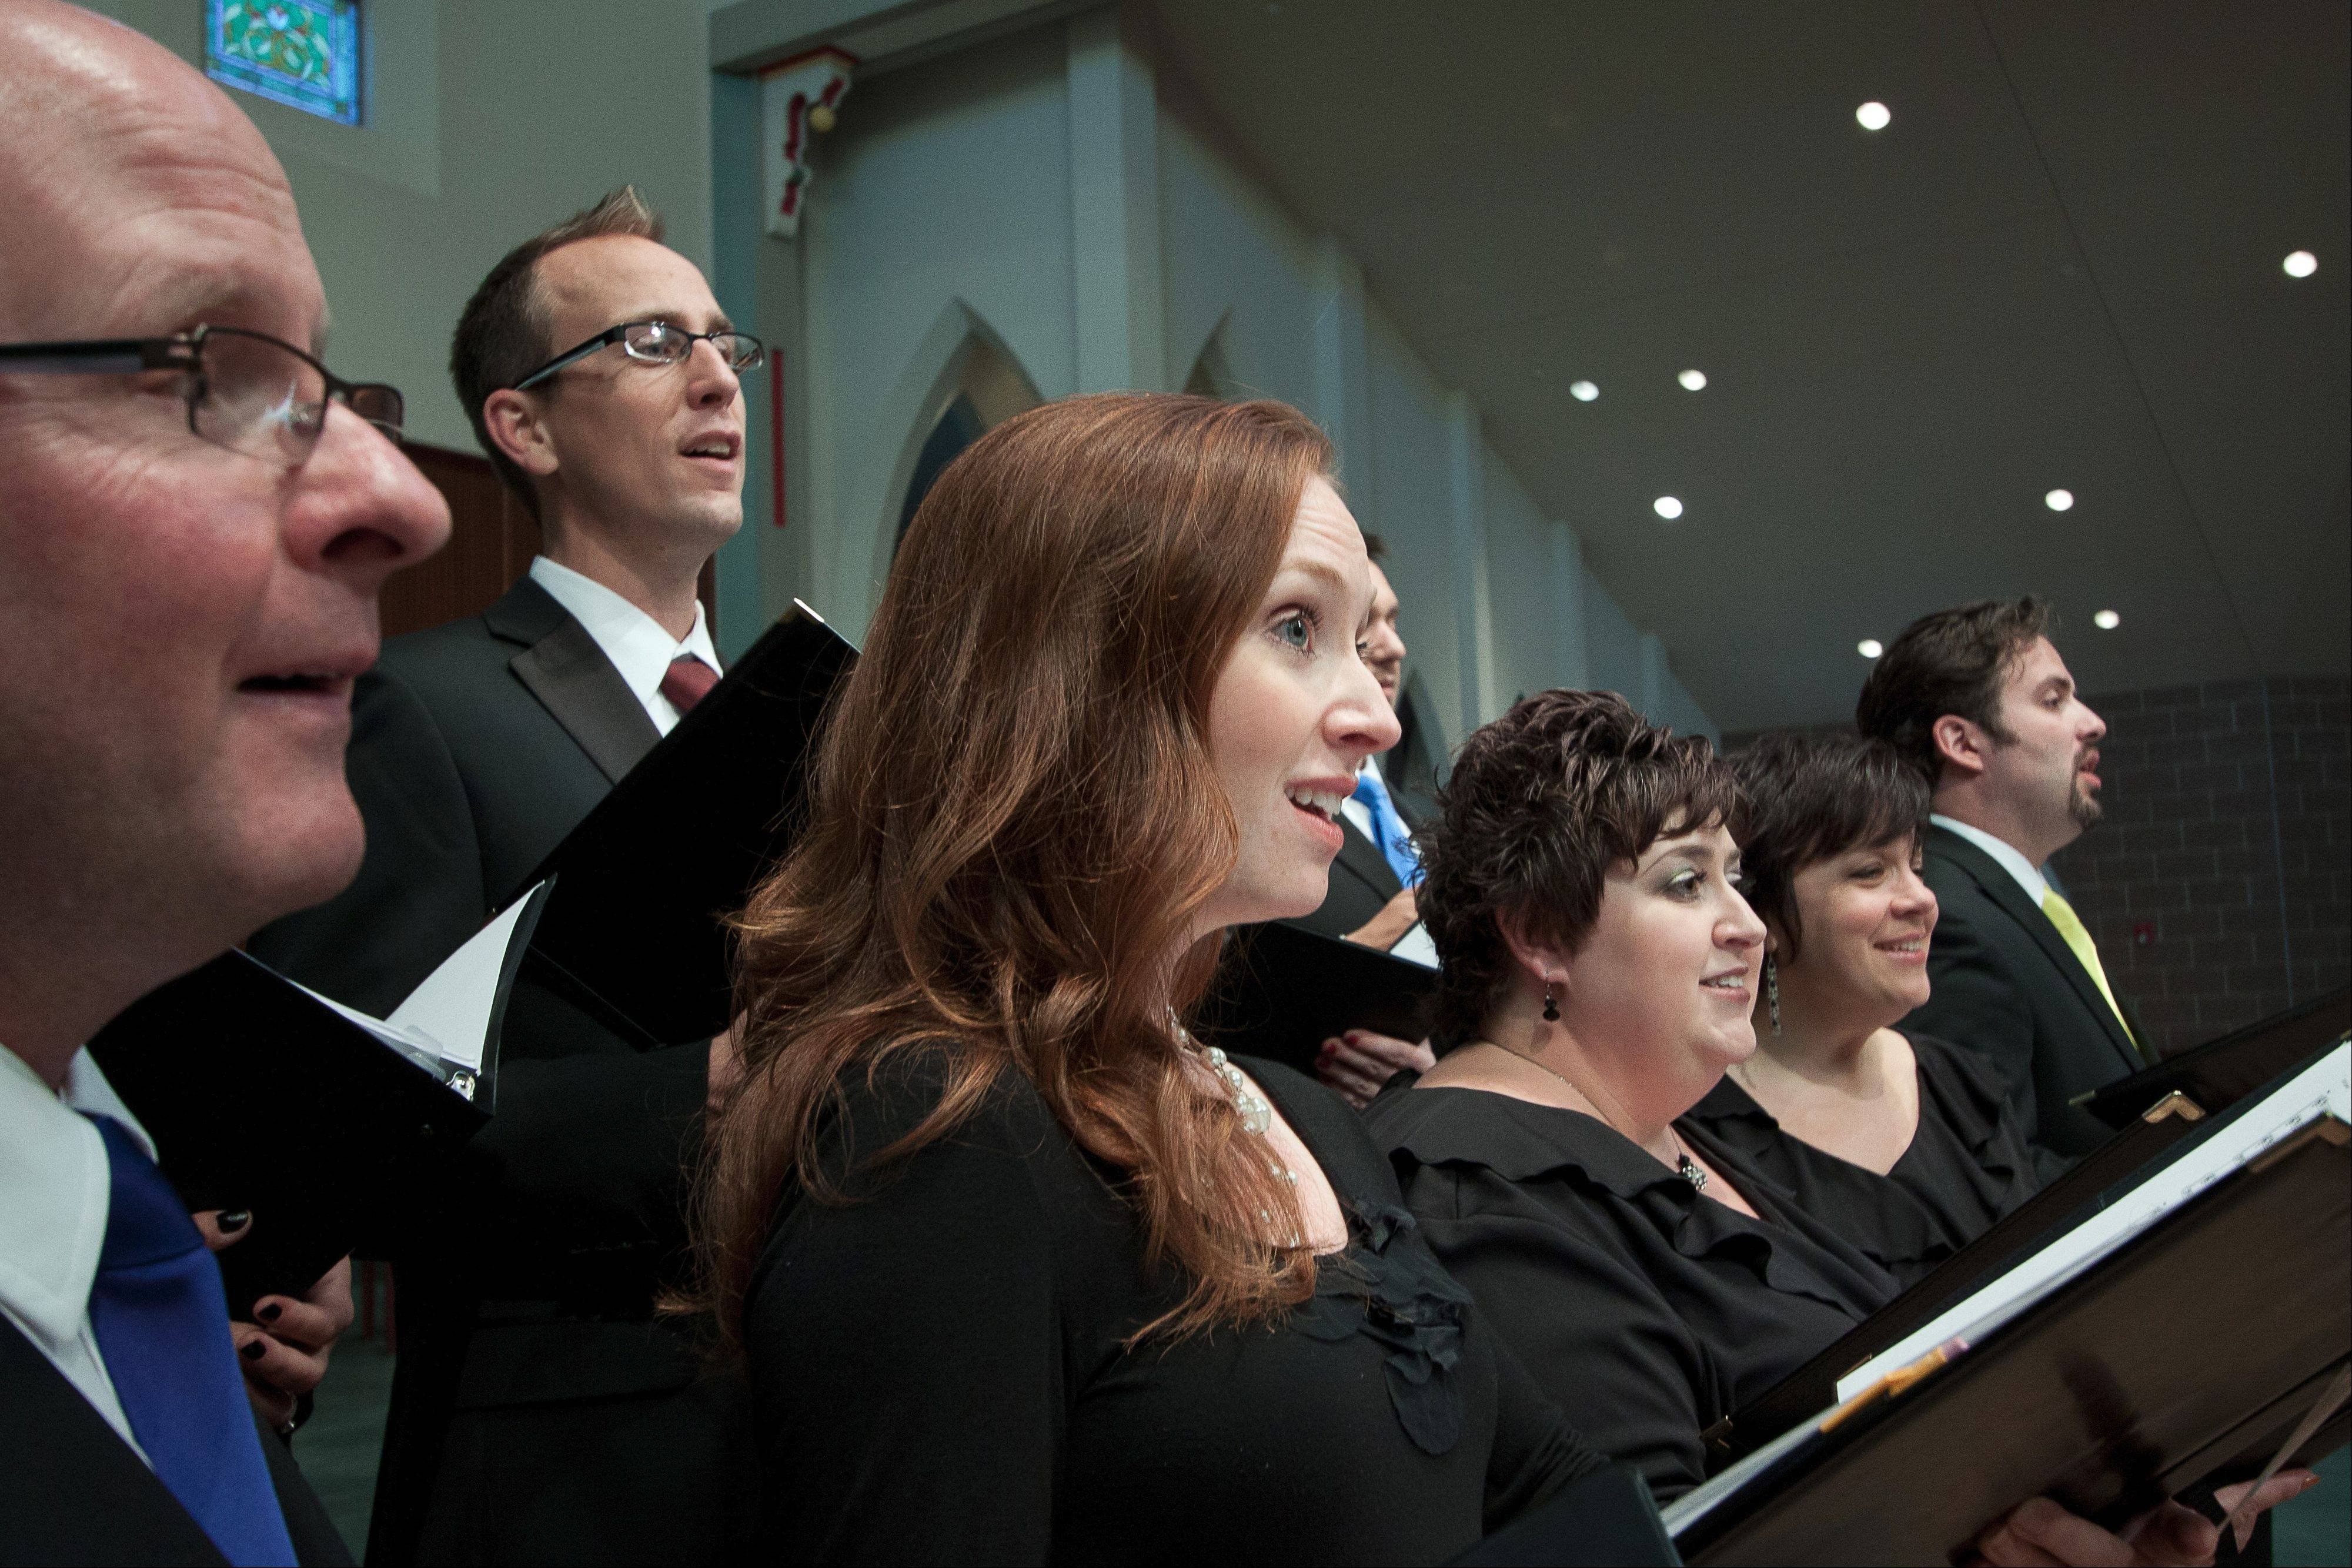 Members of the St. Charles Singers audition for their positions and are compensated for rehearsals and concerts.